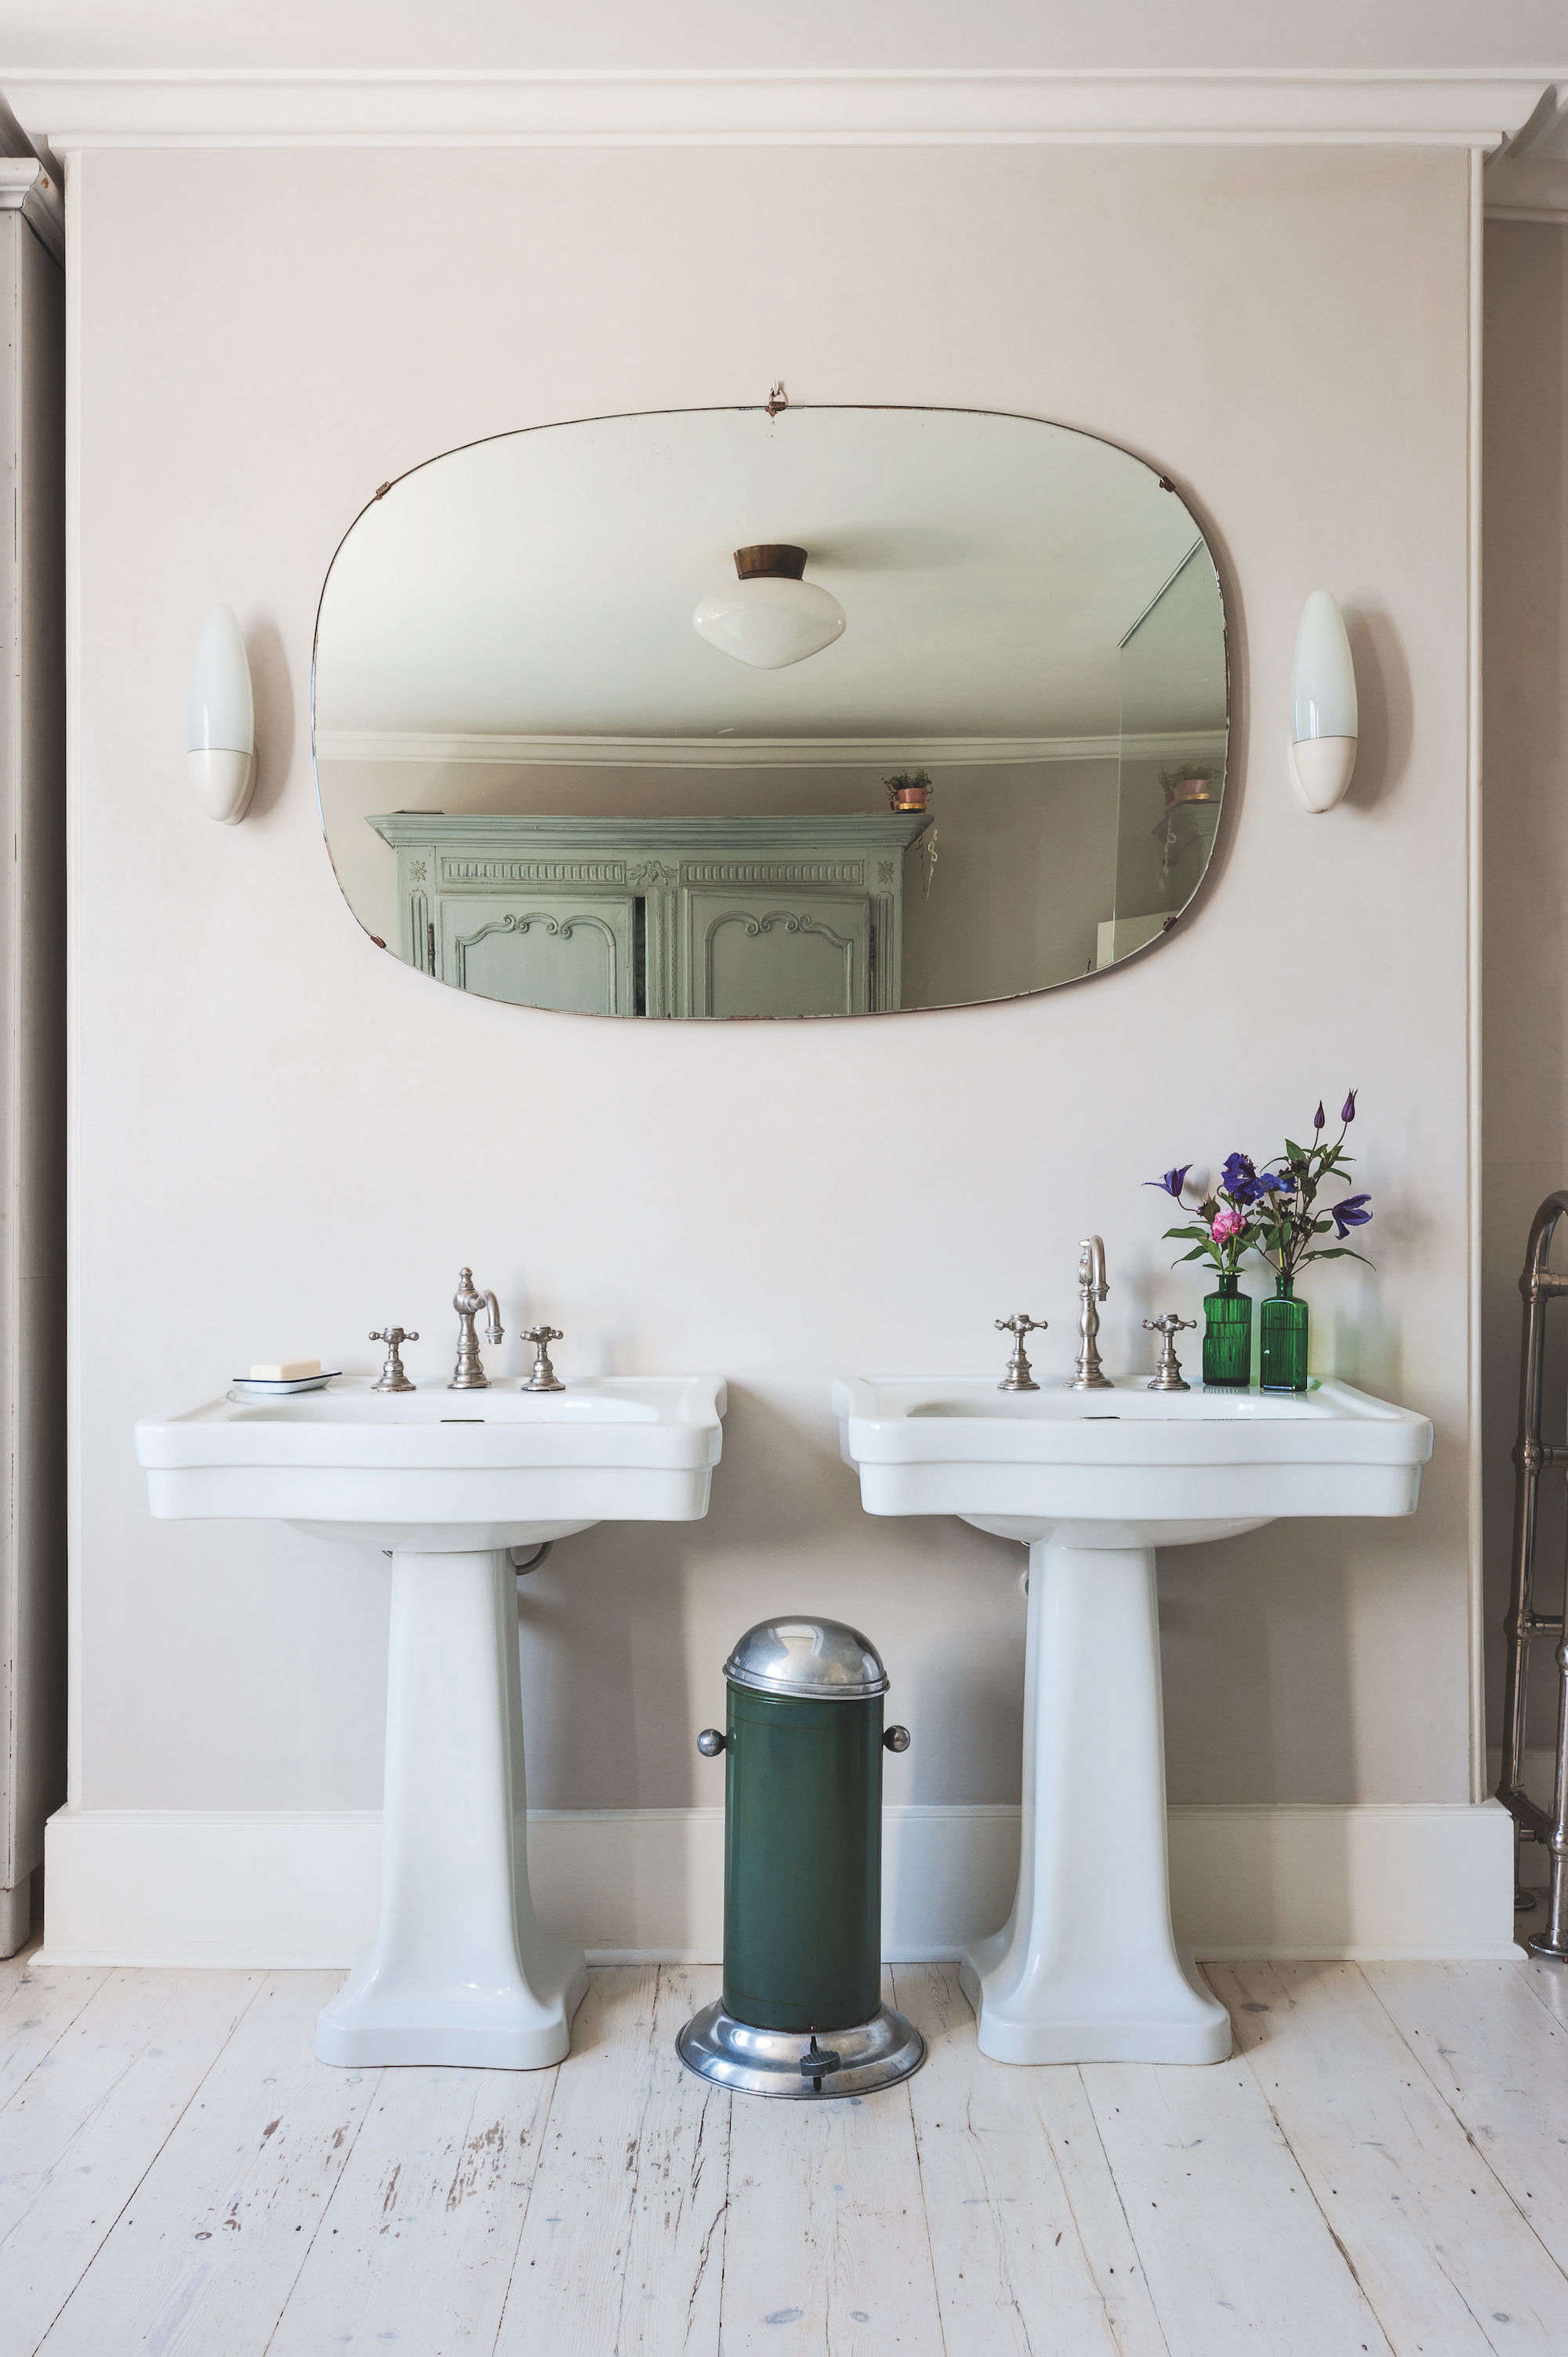 New years eve times square bathroom - Bathroom Of The Week A Romantic London Bath Made From Vintage Parts